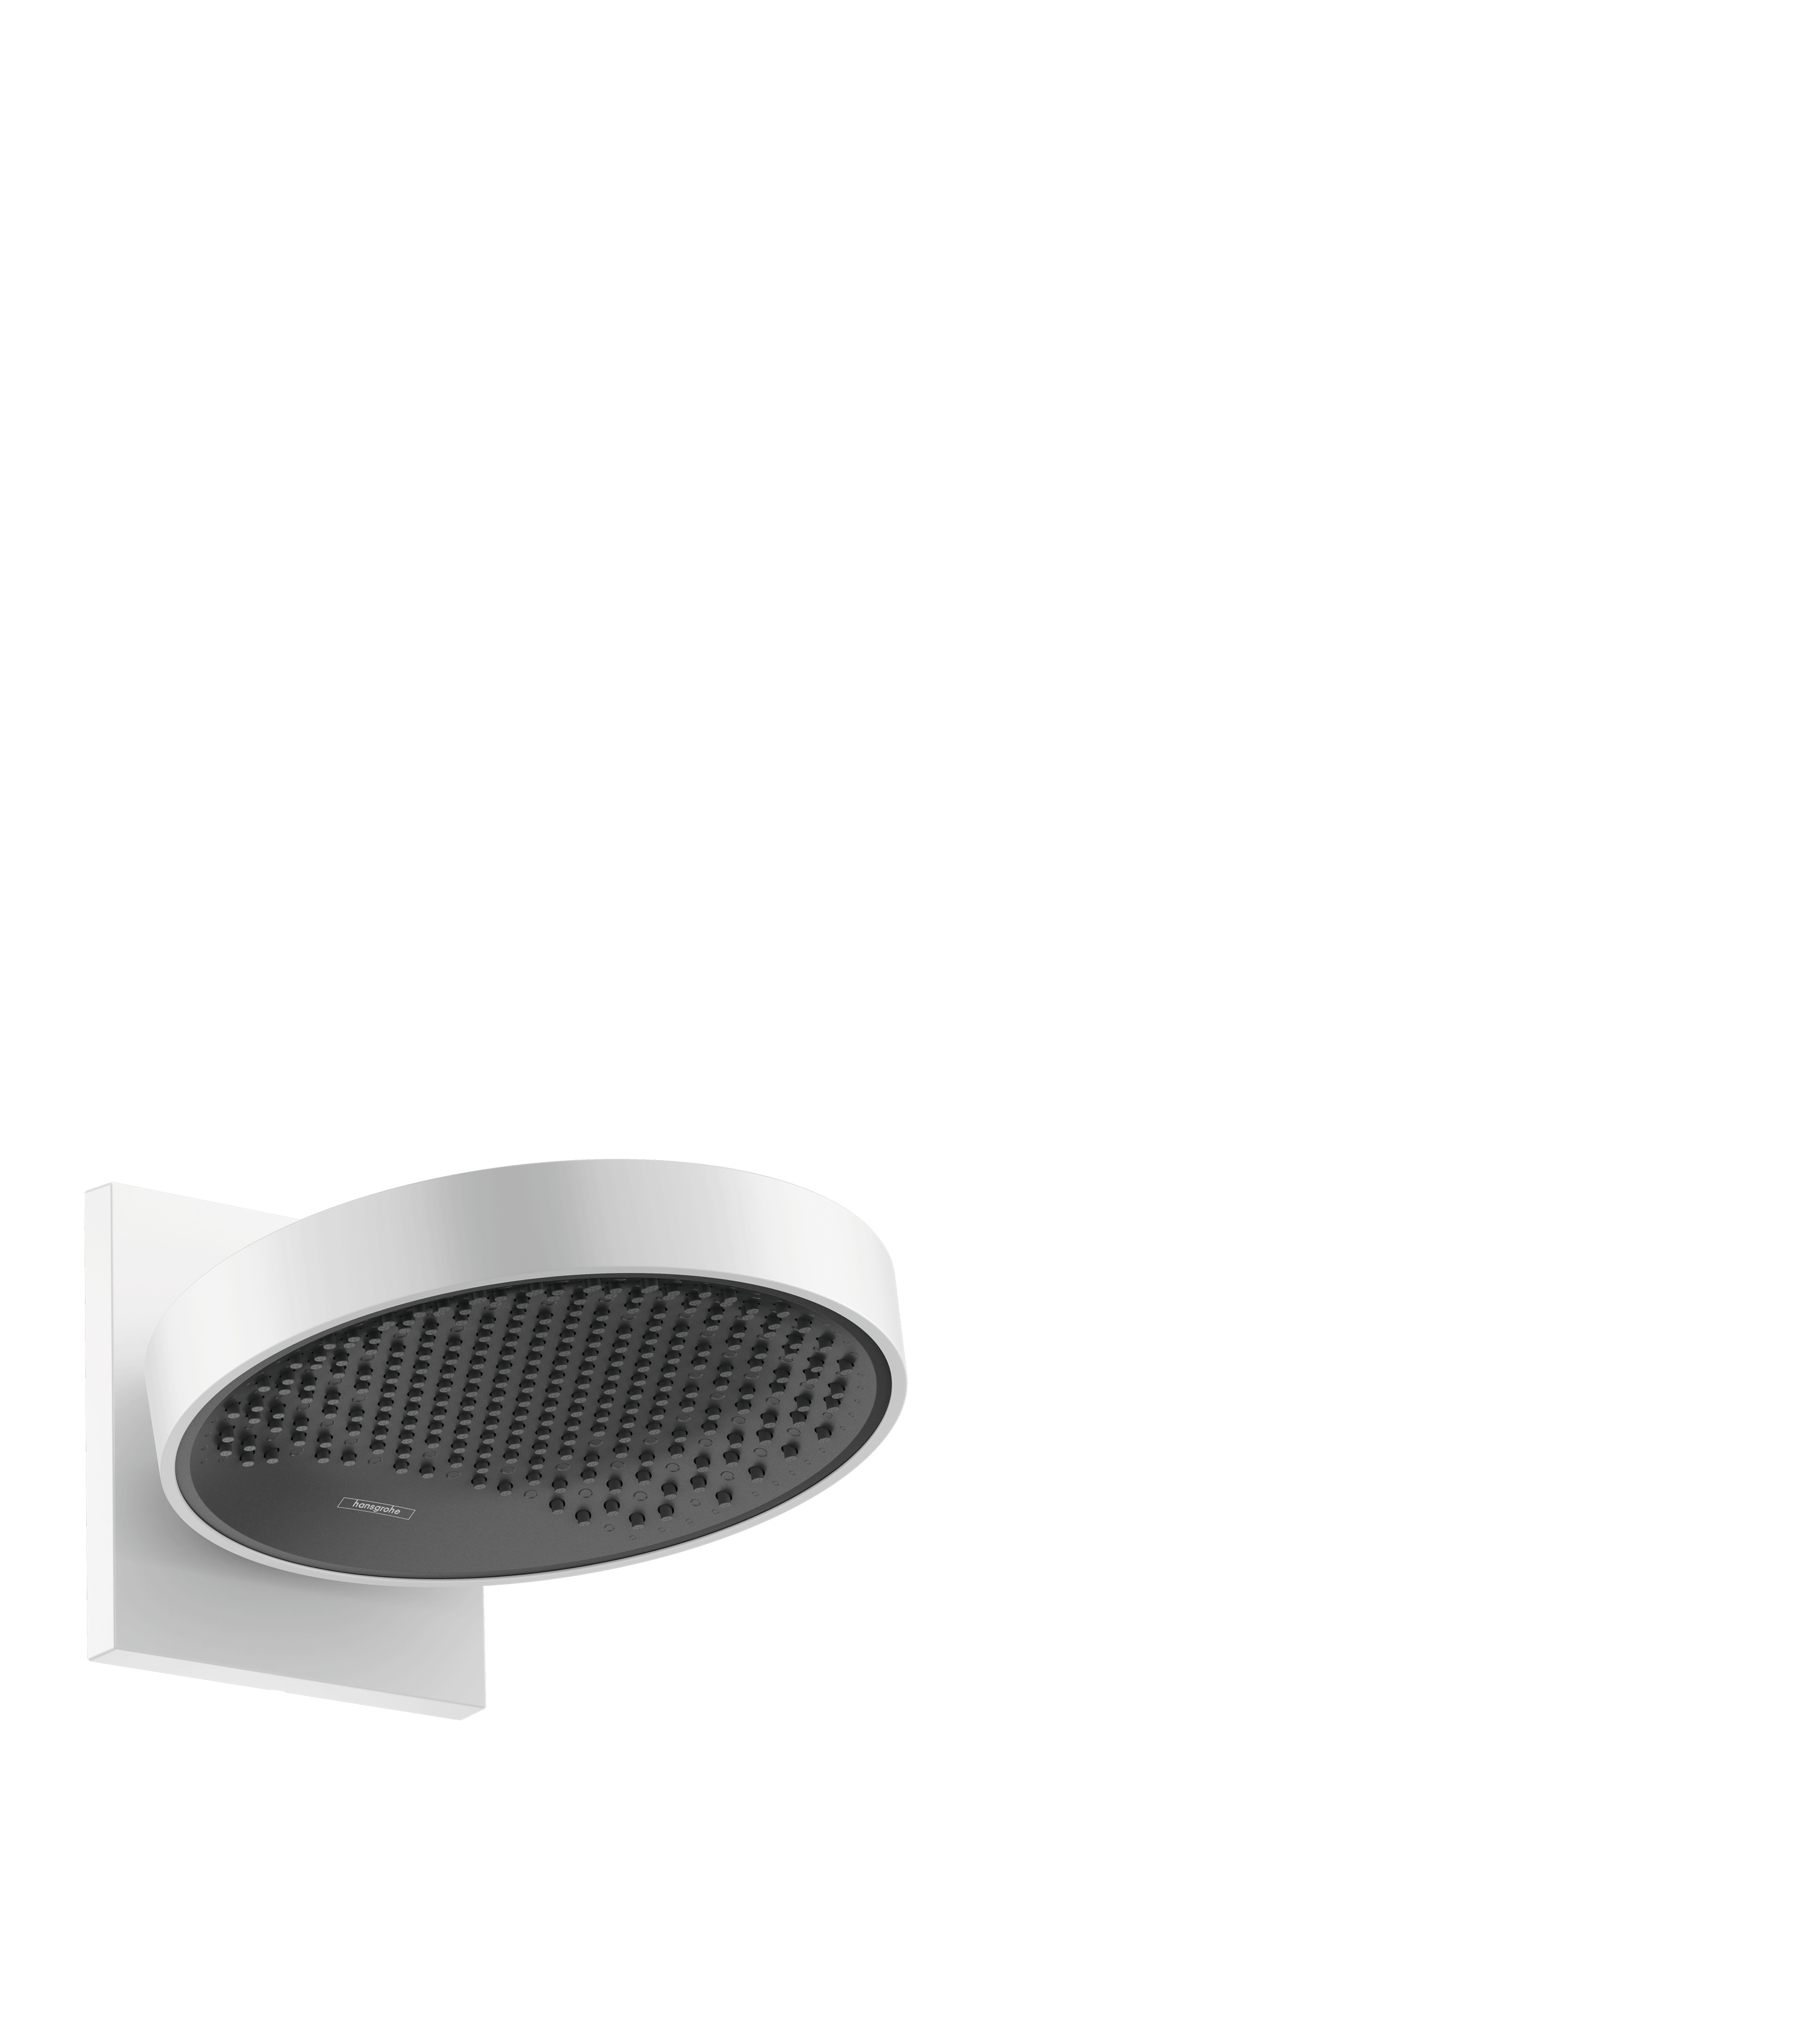 Details About Hansgrohe Shower Head Rainfinity 250 1jet 26227700